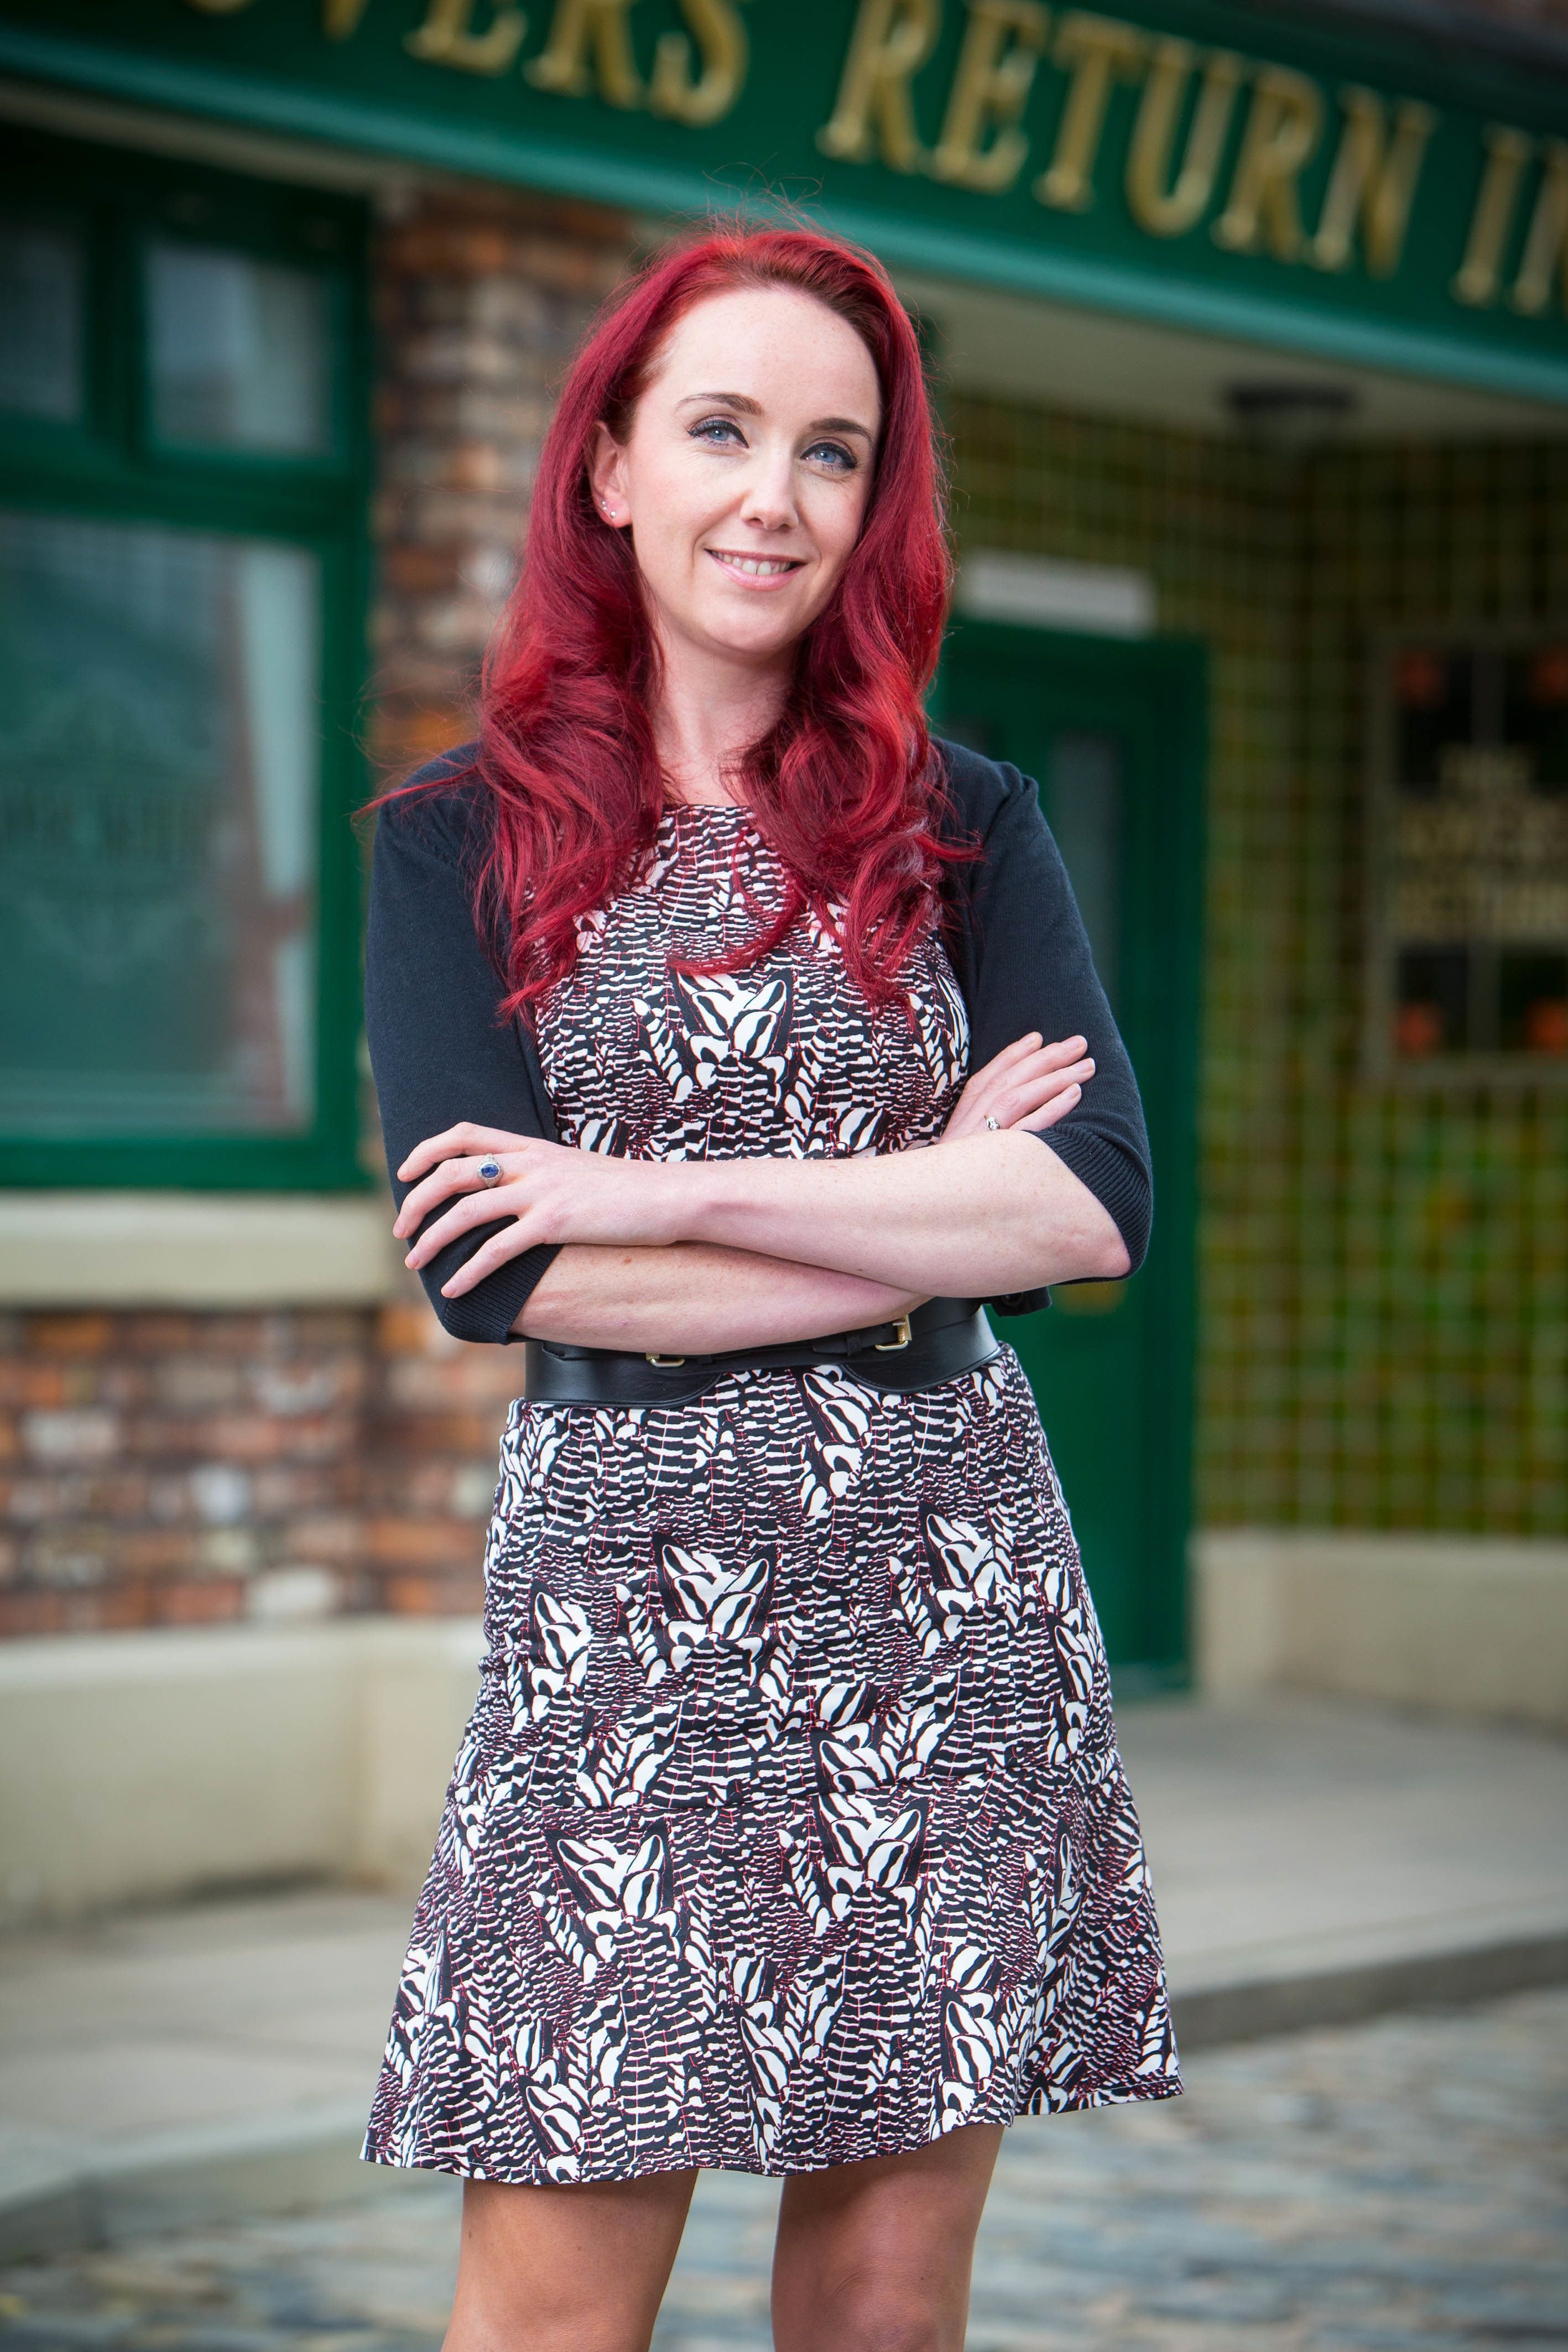 'Coronation Street' Boss Kate Oates Announces Departure After String Of Controversial